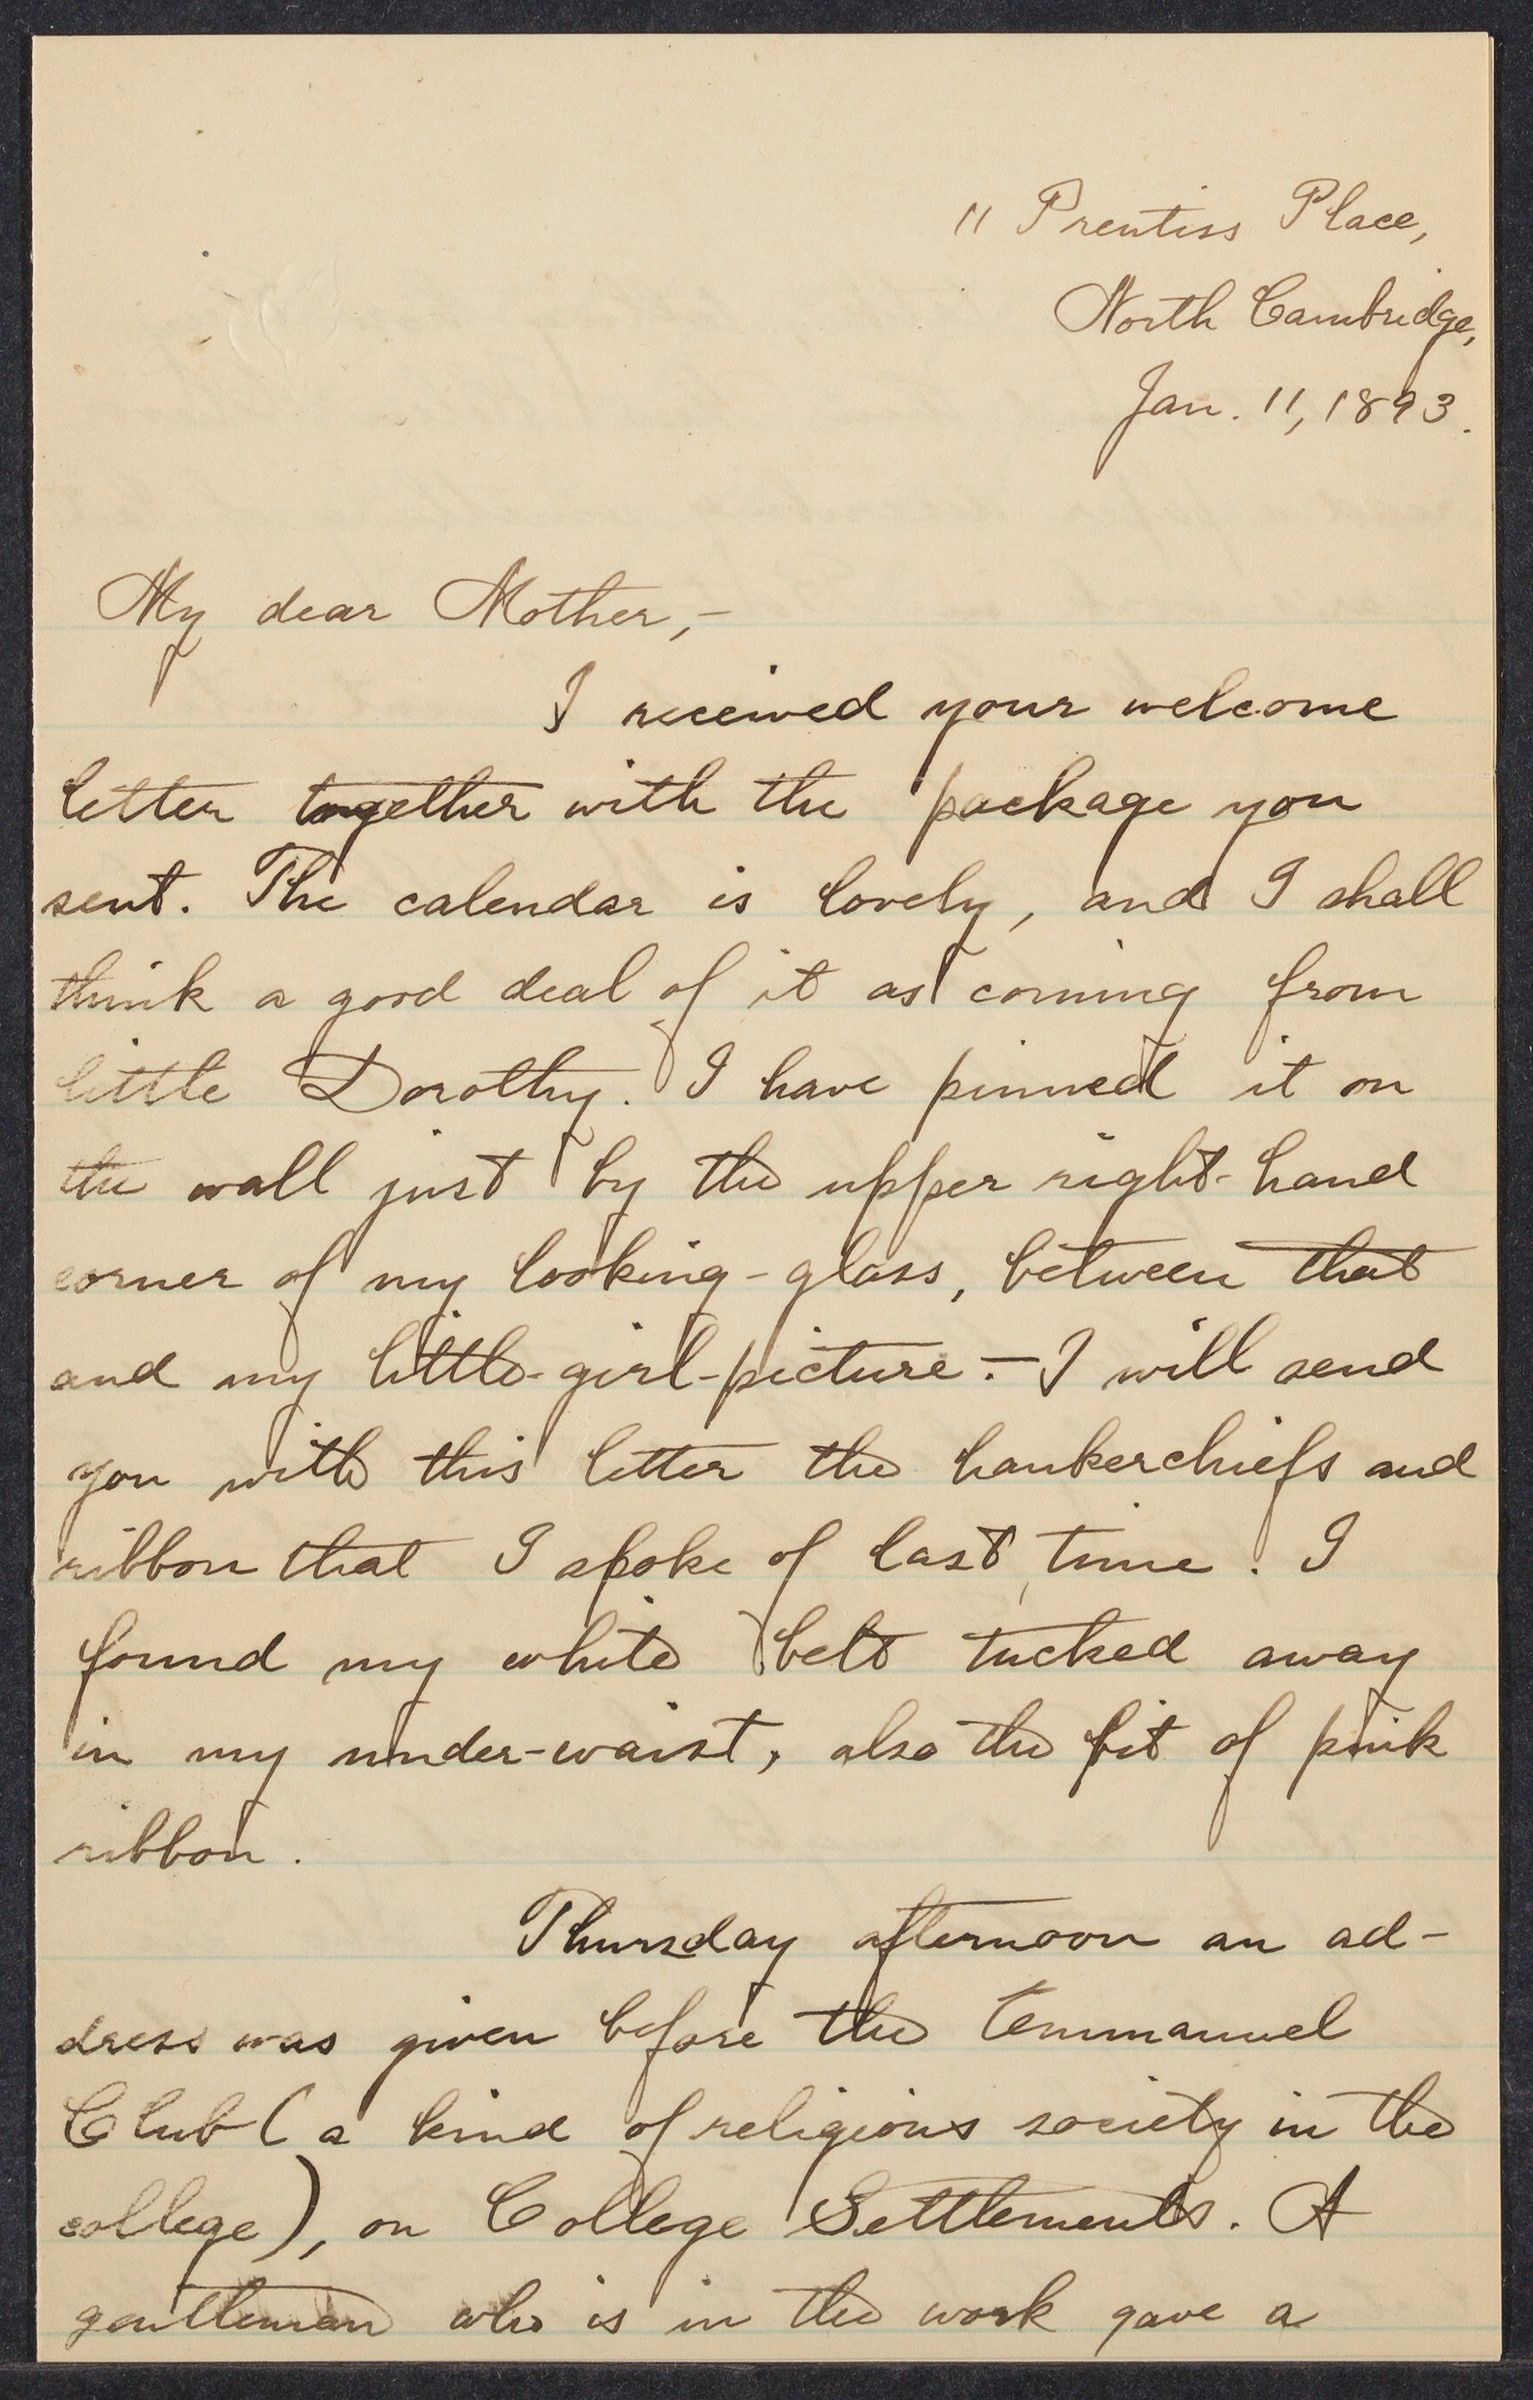 Mary White Morton Ziegler letters, September 1893 - May 1895